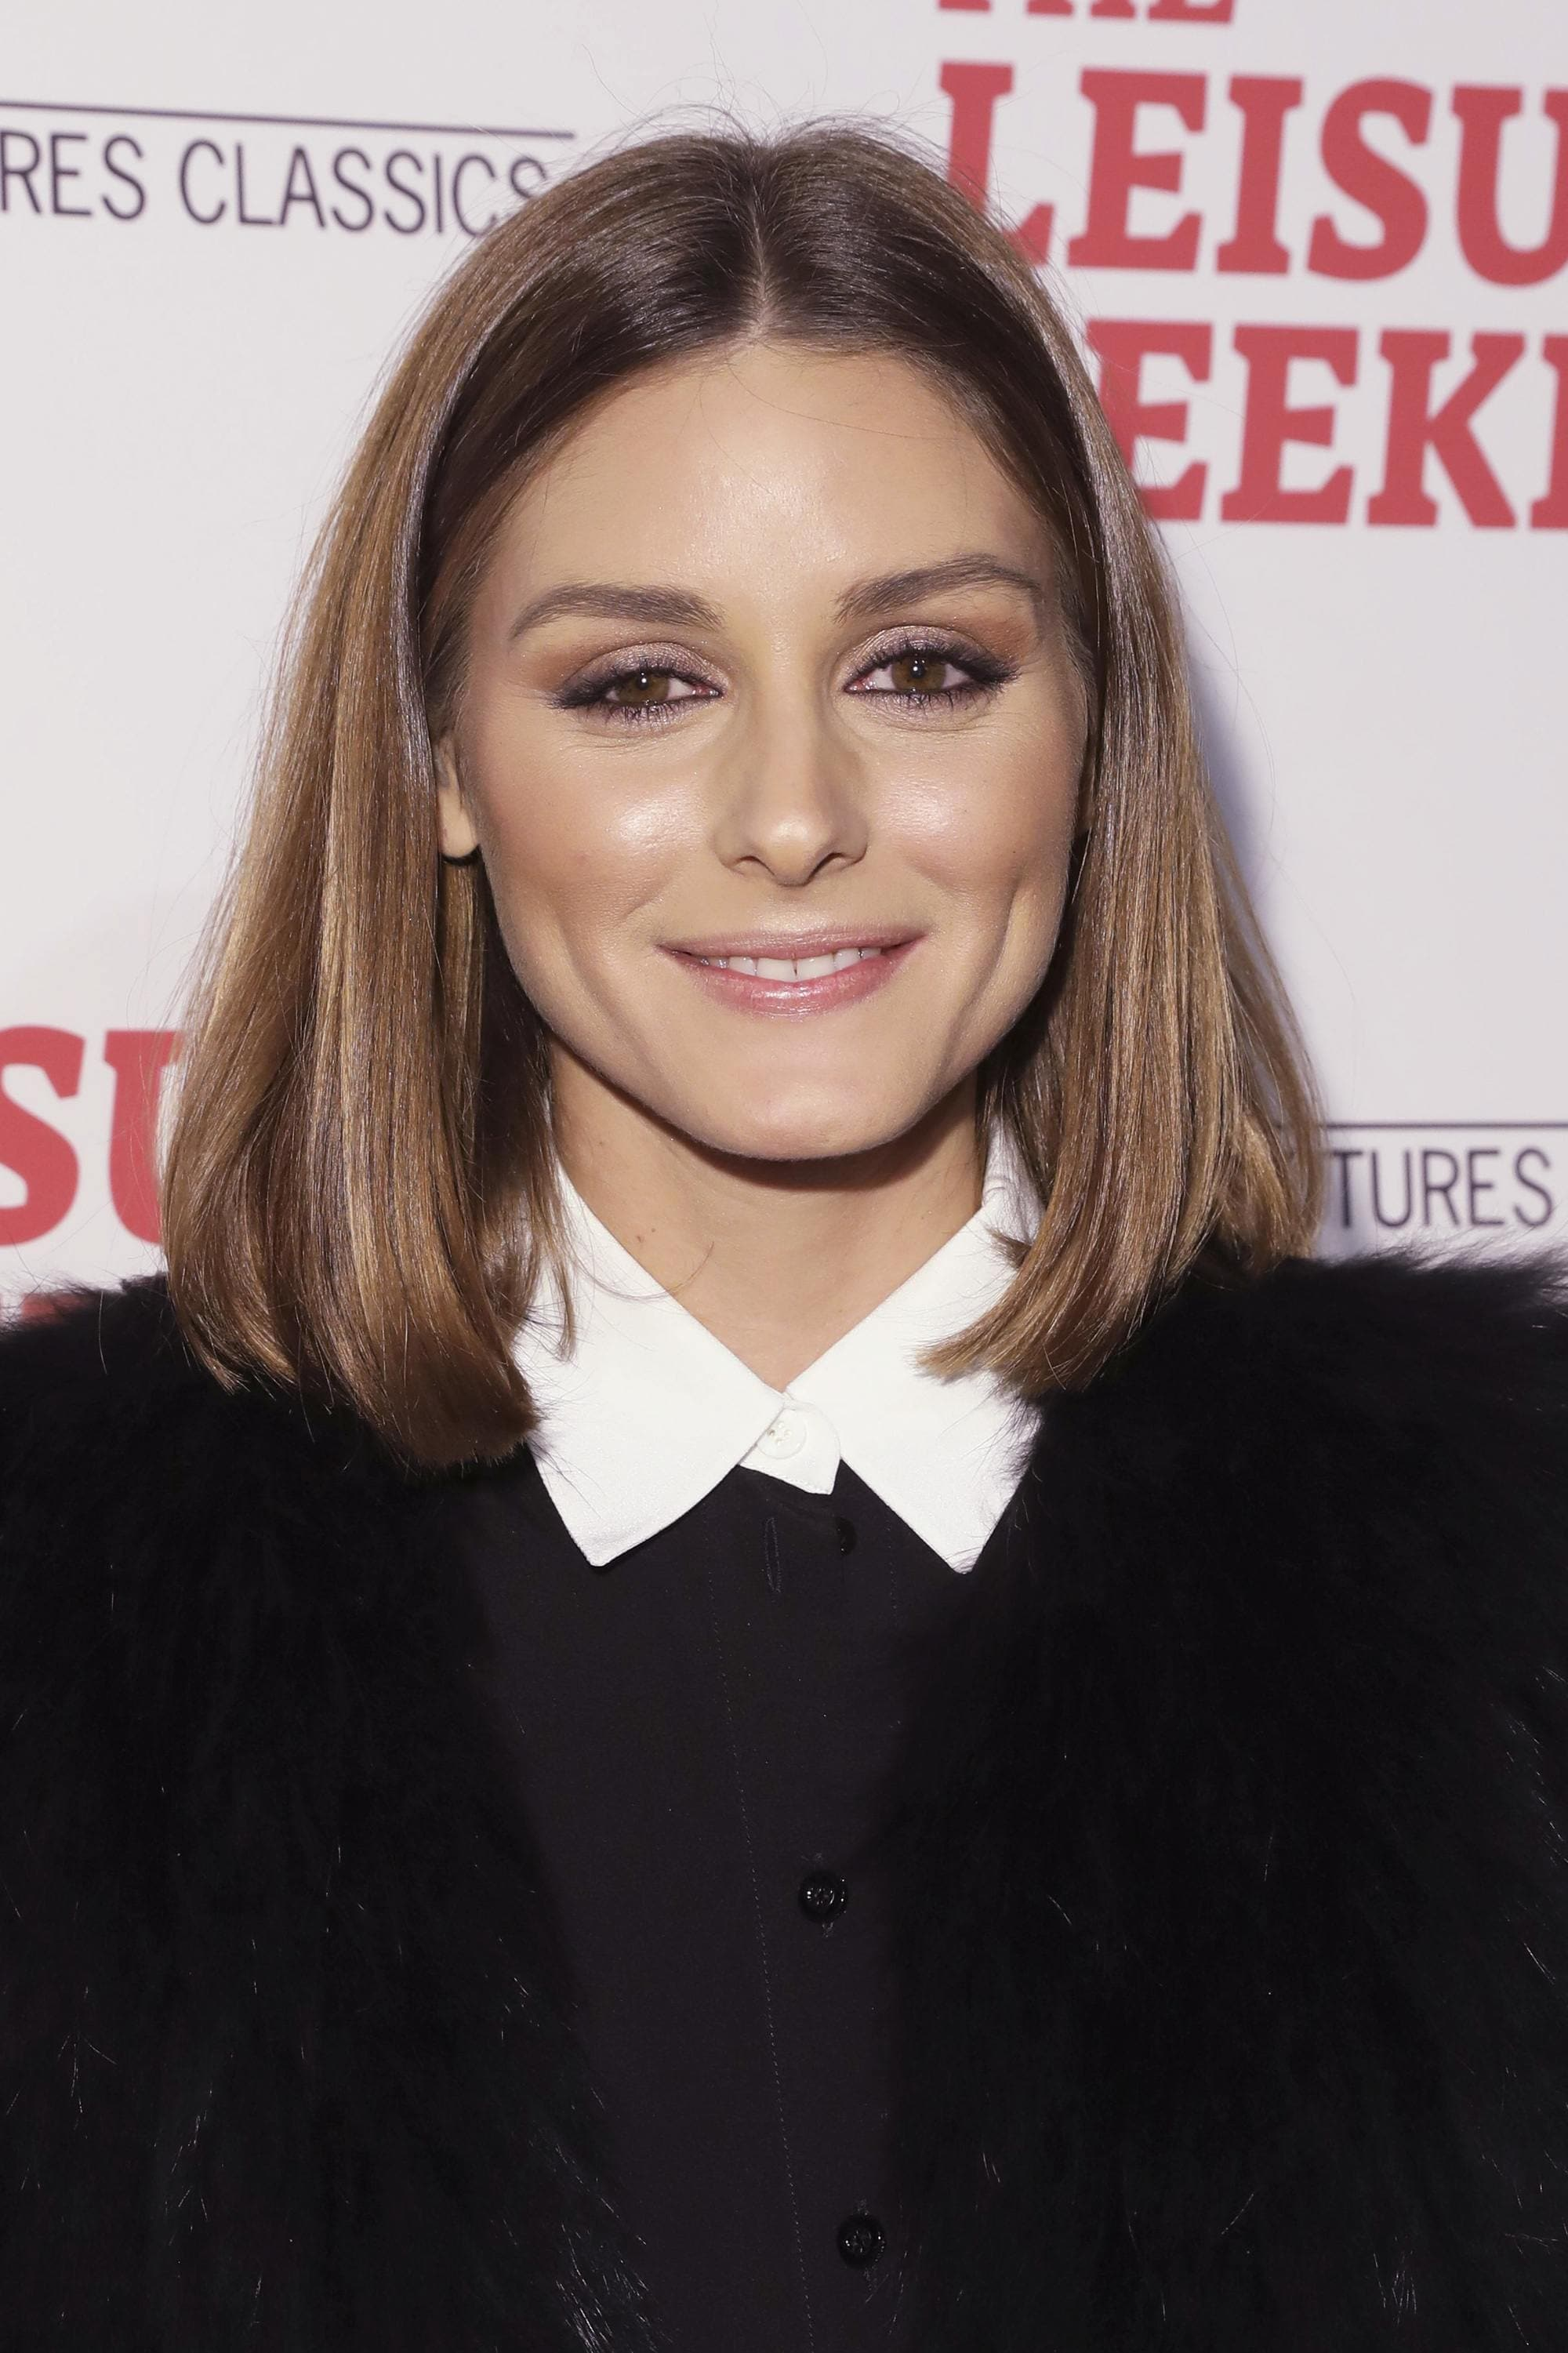 Haircuts for fine straight hair: Olivia Palermo with an ashy brown blunt cut bob, wearing a white collared shirt and blazer